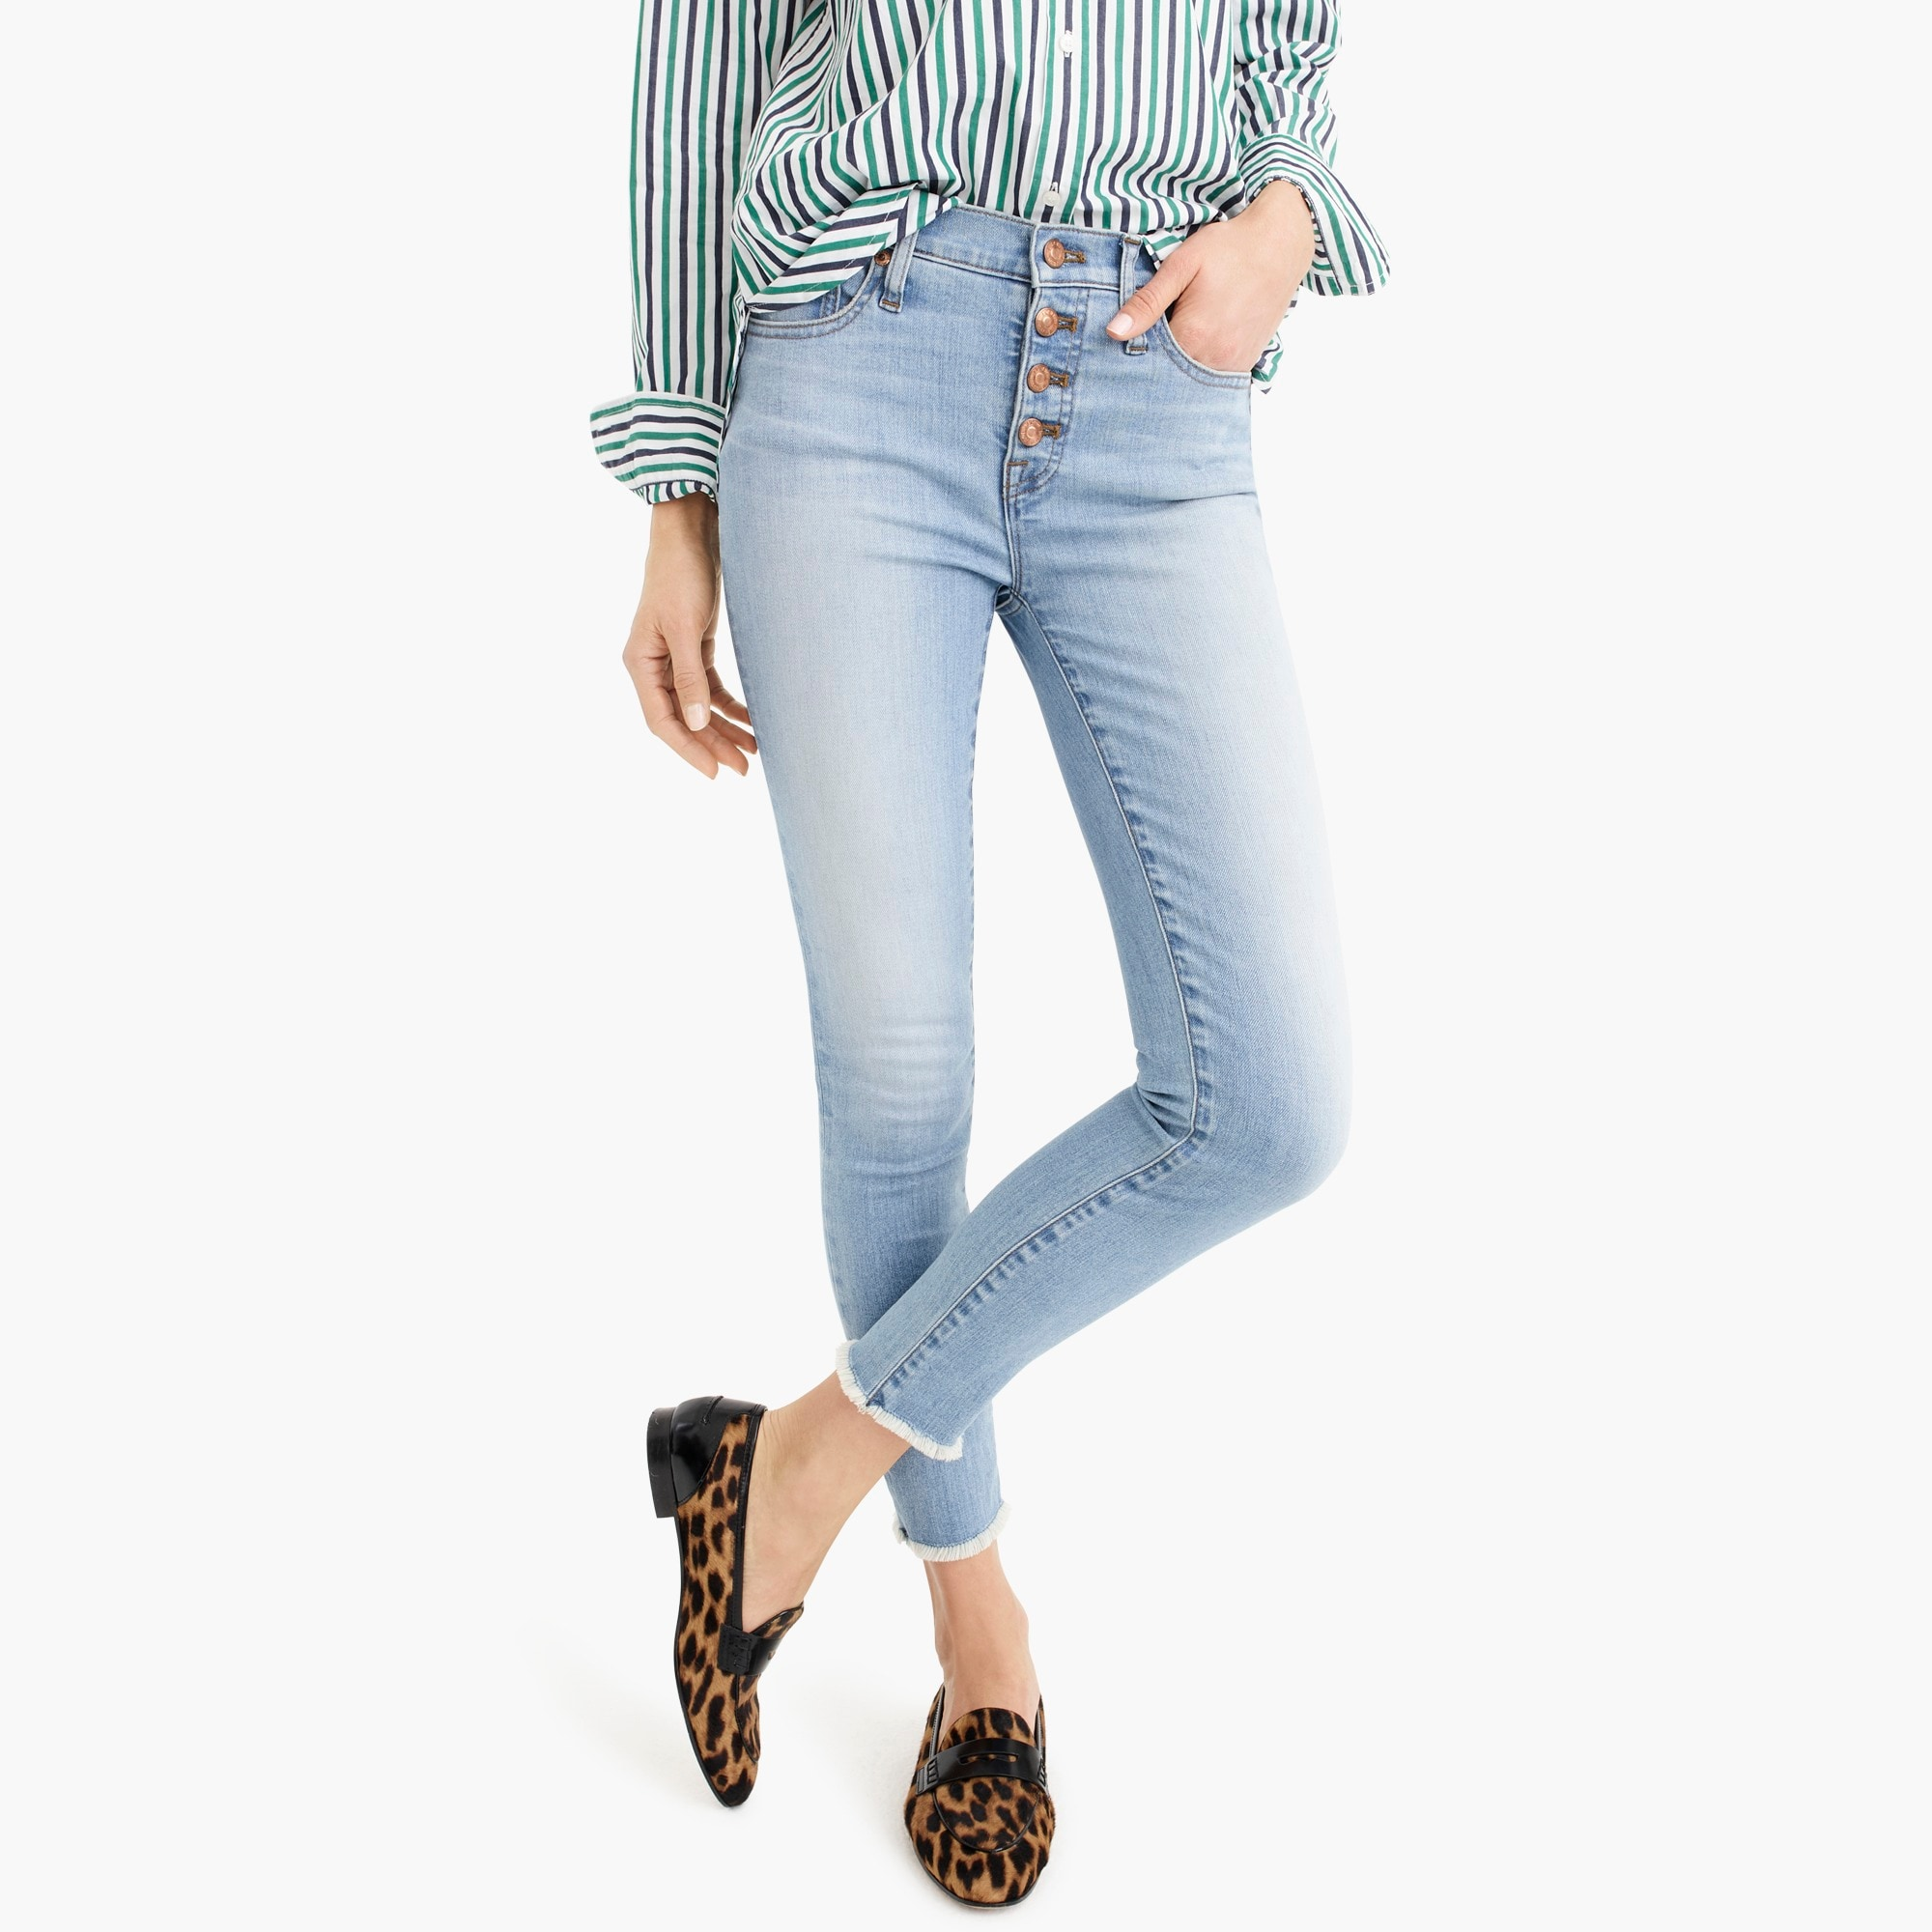 Womens eco high rise toothpick jean in light worn wash also women   denim the collection jew rh jcrew